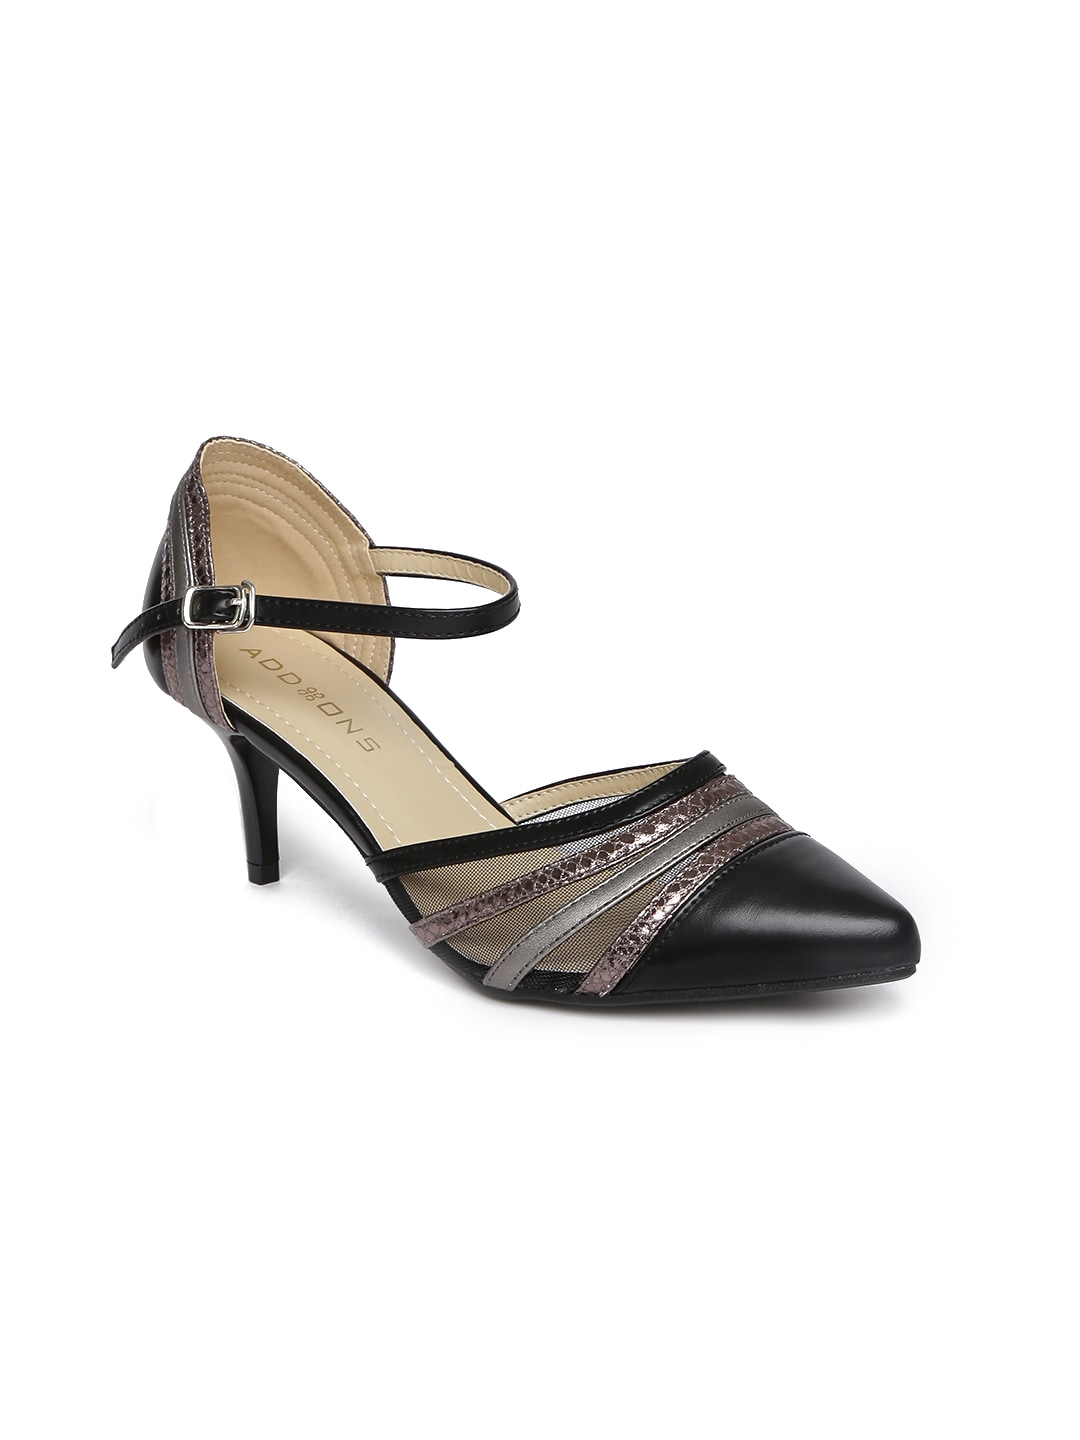 1749a6e7ceb6 Addons Women Black Solid Pumps